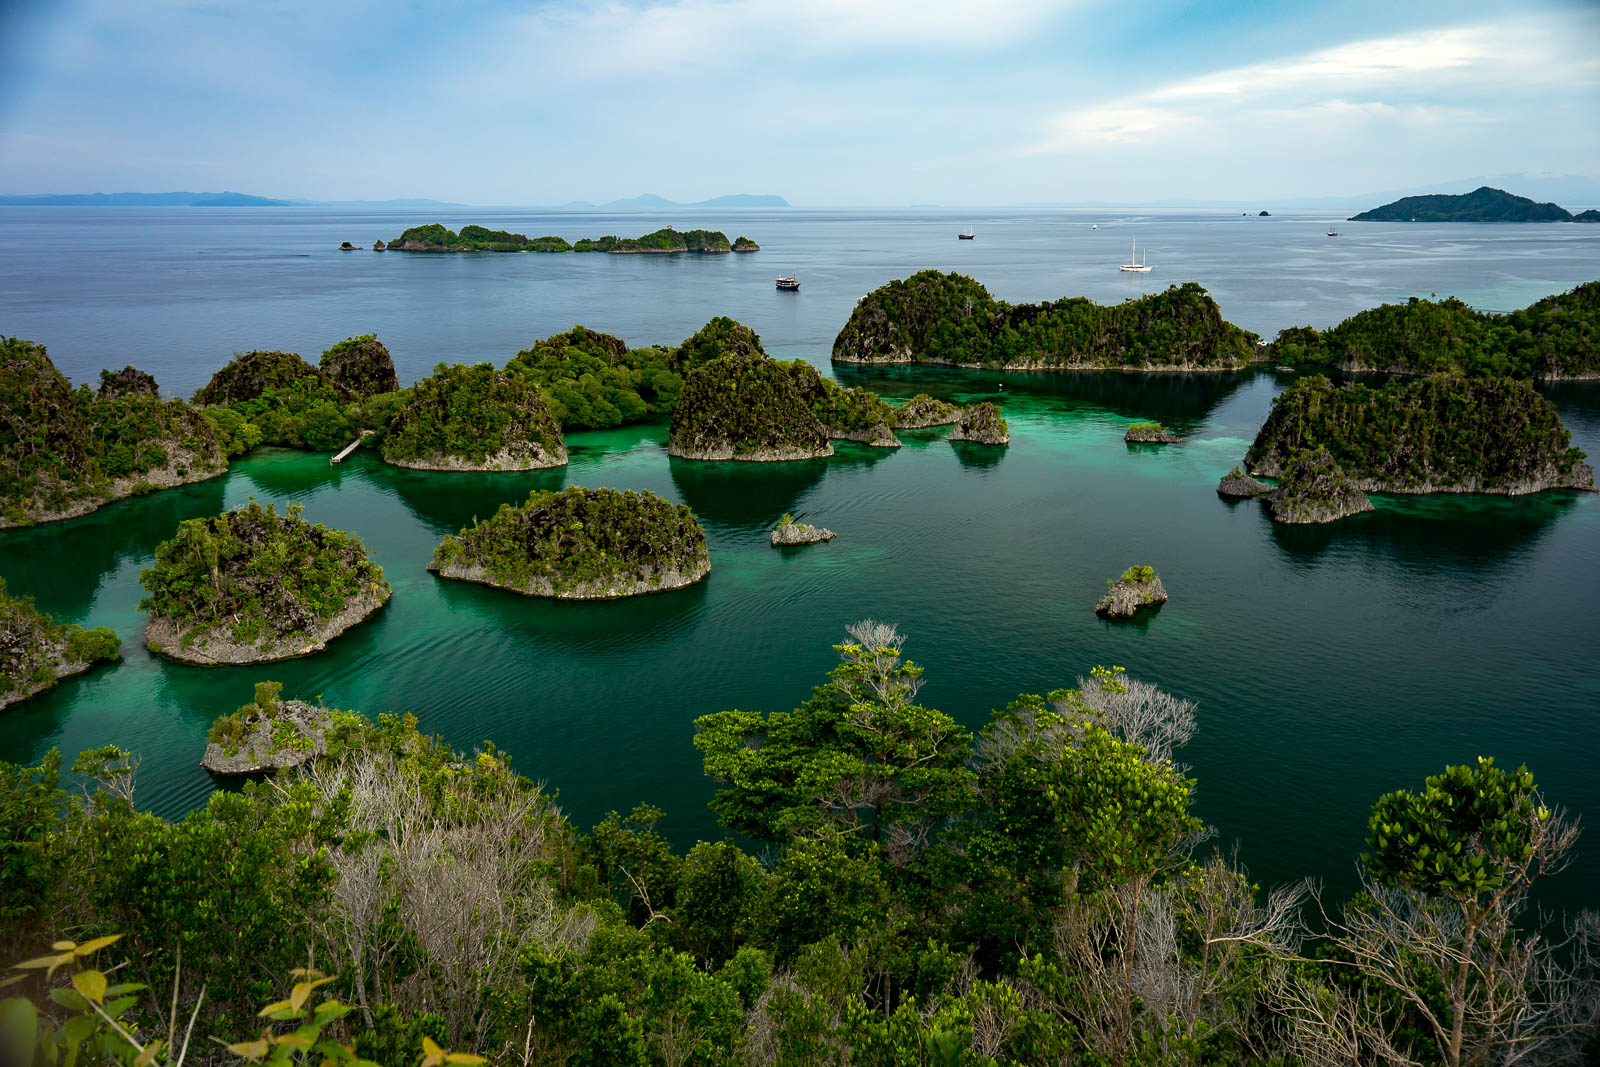 It's Possible to go on a Liveaboard with Kids in Raja Ampat